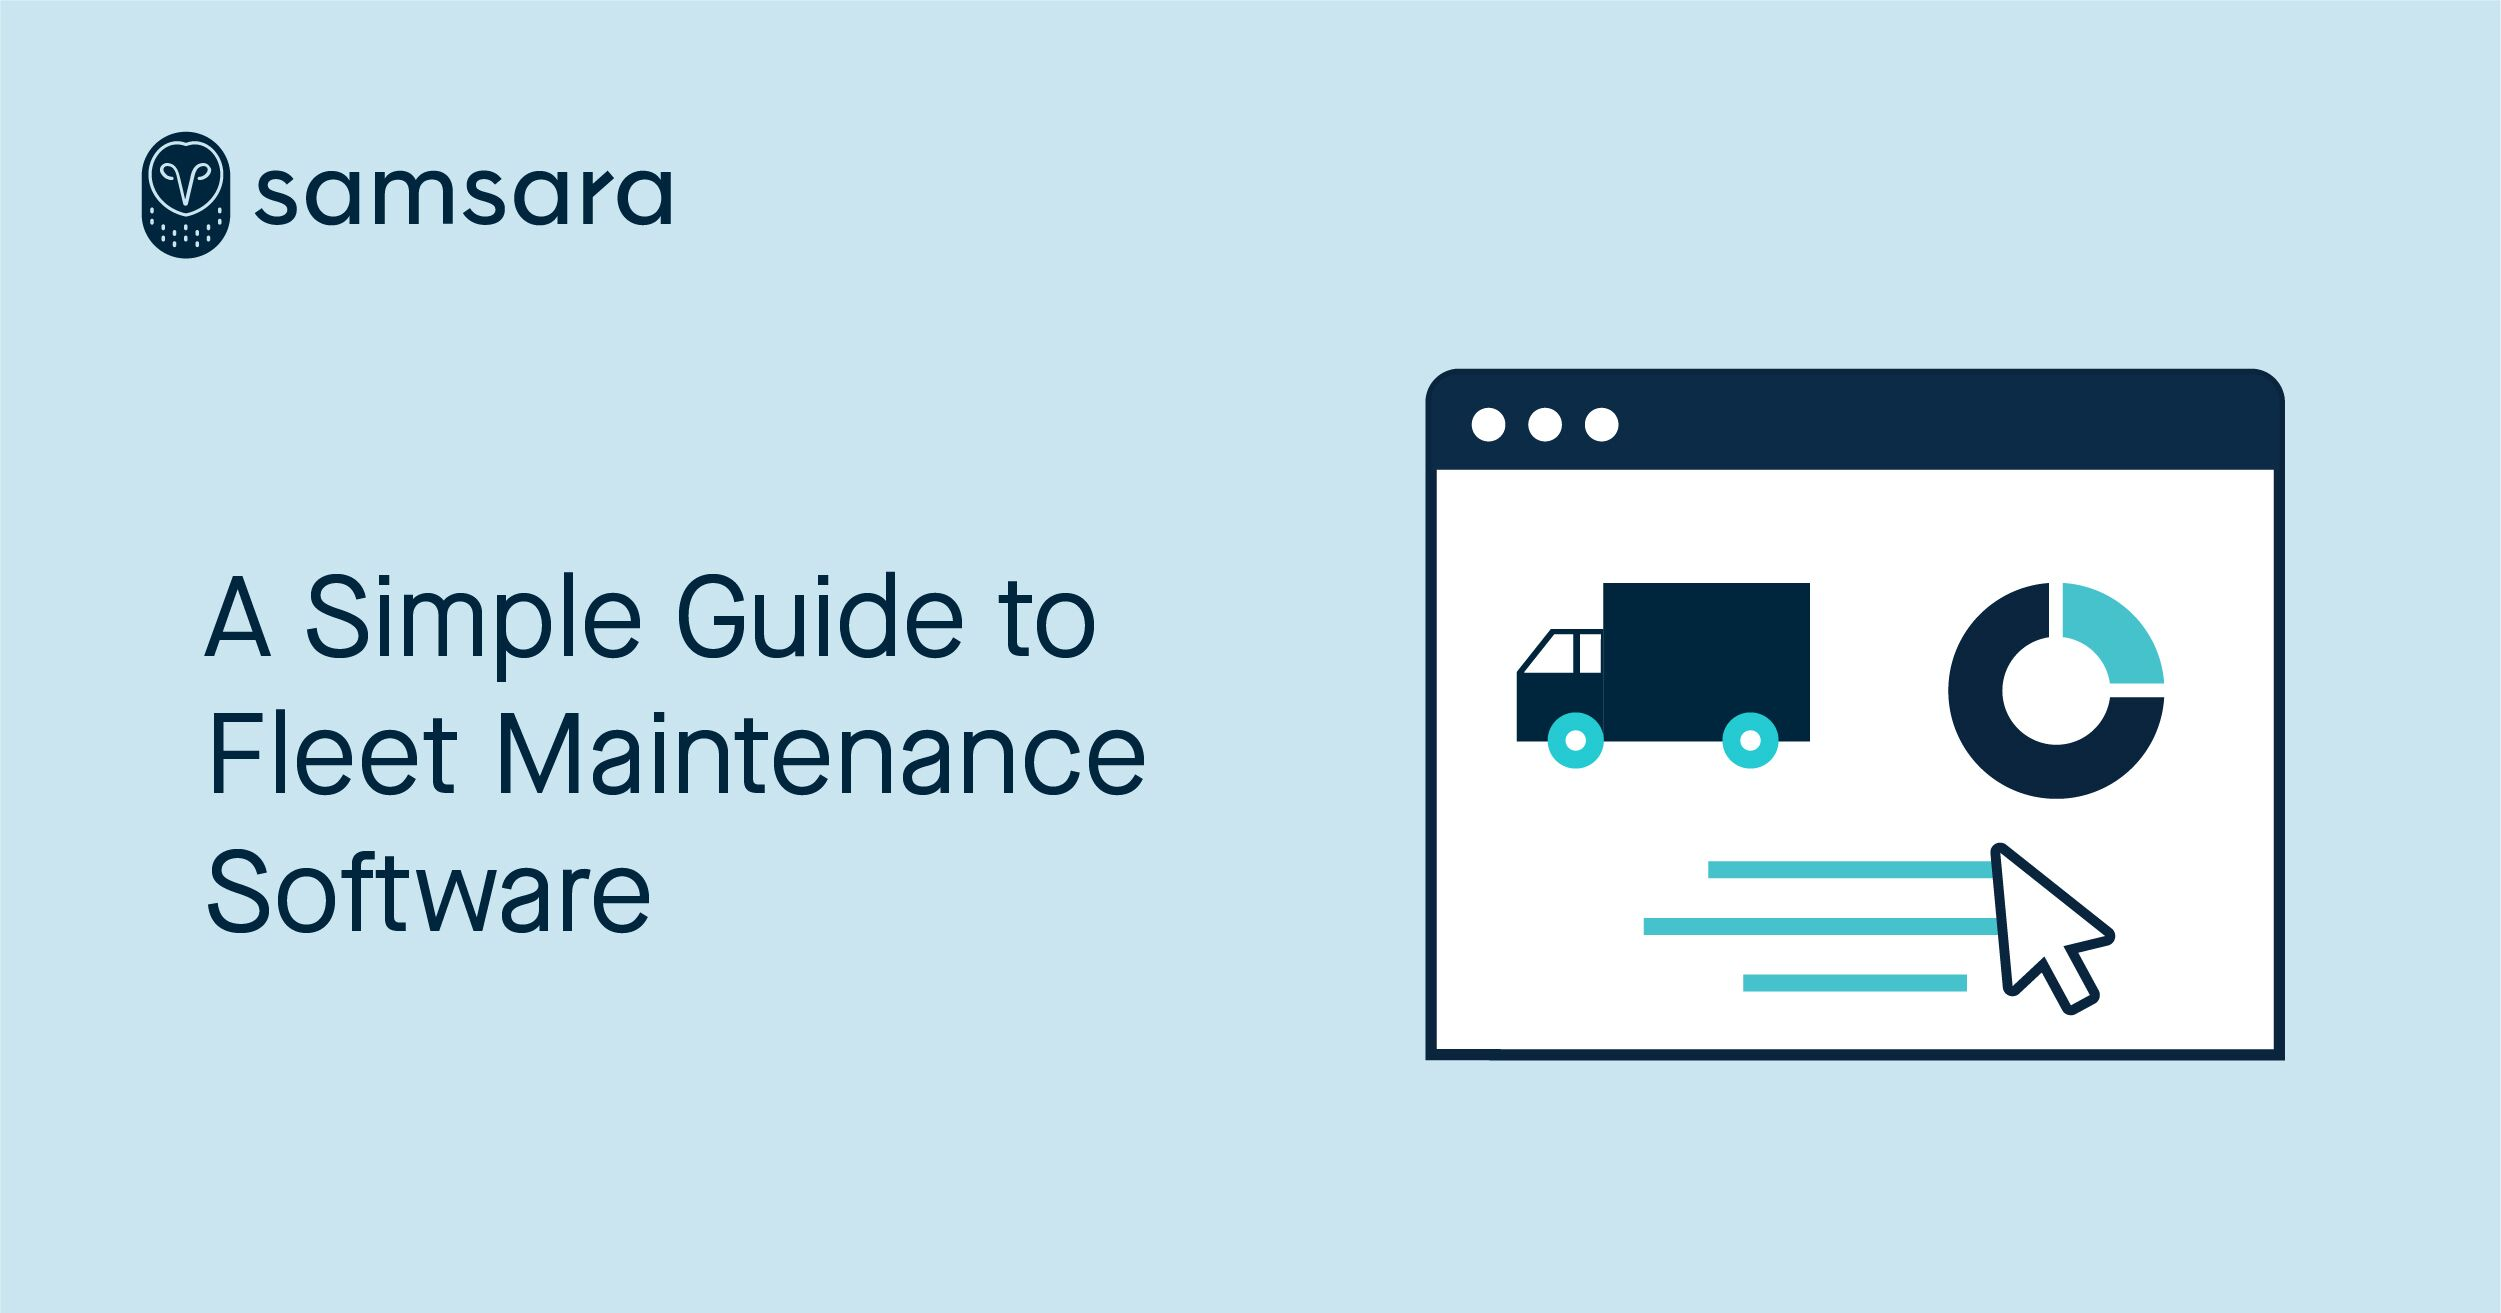 A Simple Guide to Fleet Maintenance Software